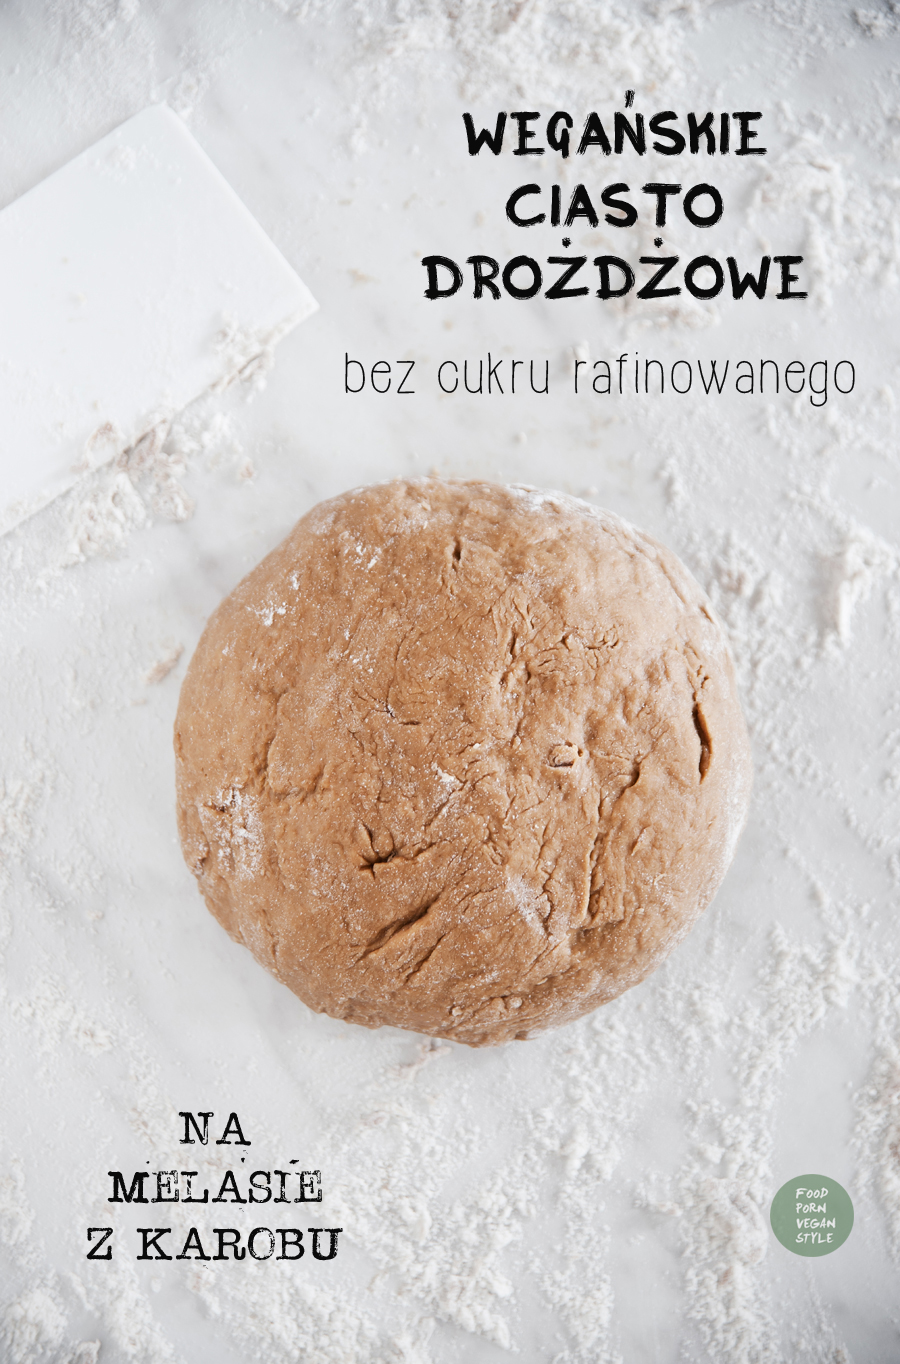 Vegan yeast dough with carob molasses (refined sugar-free)